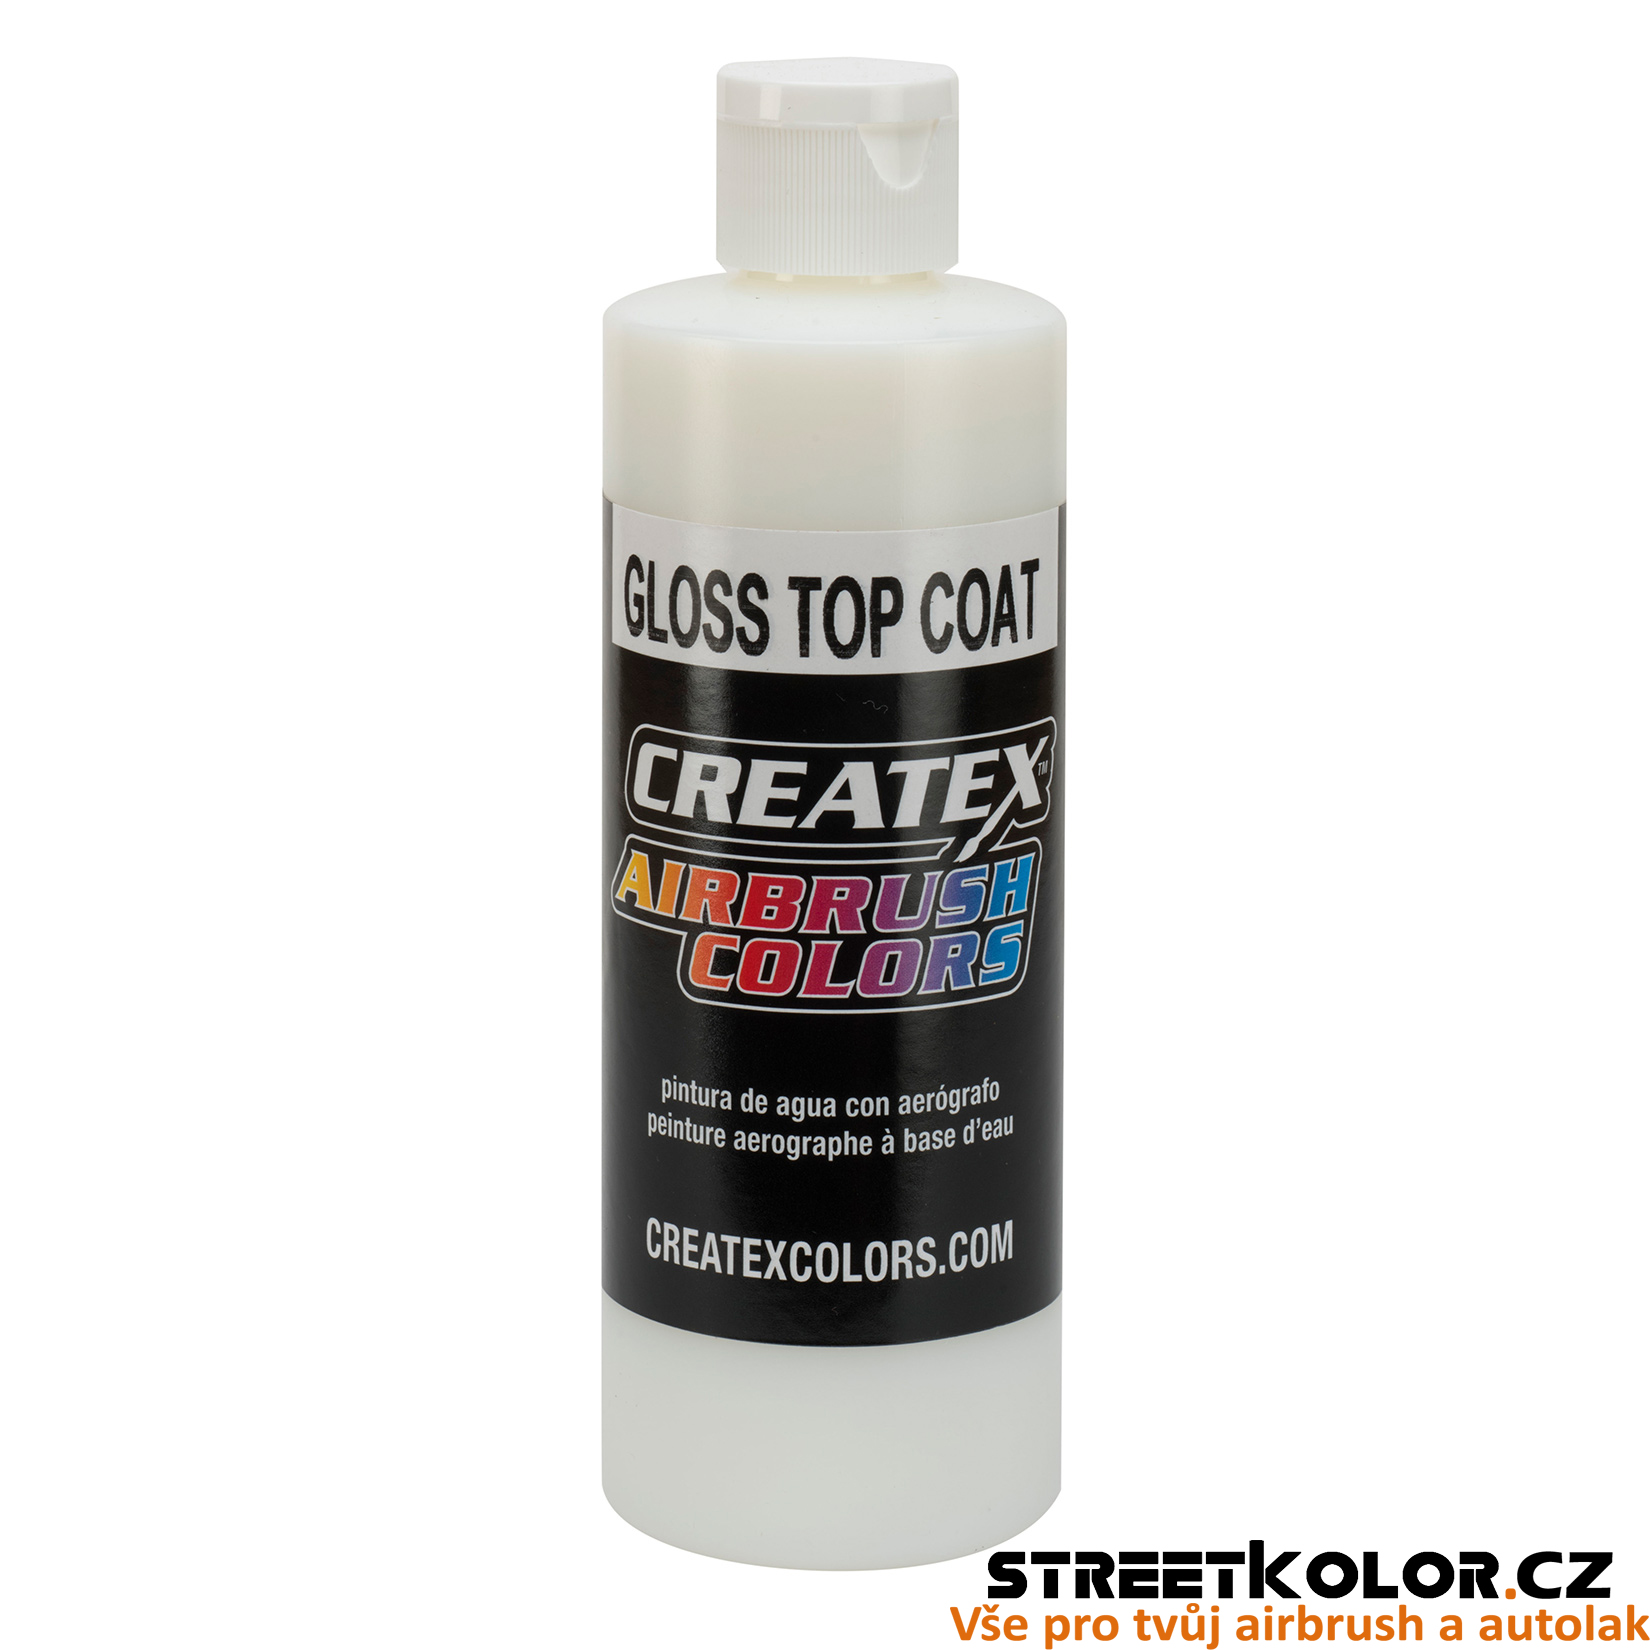 CreateX 5604 Lesklý lak - Gloss Top Coat 60ml